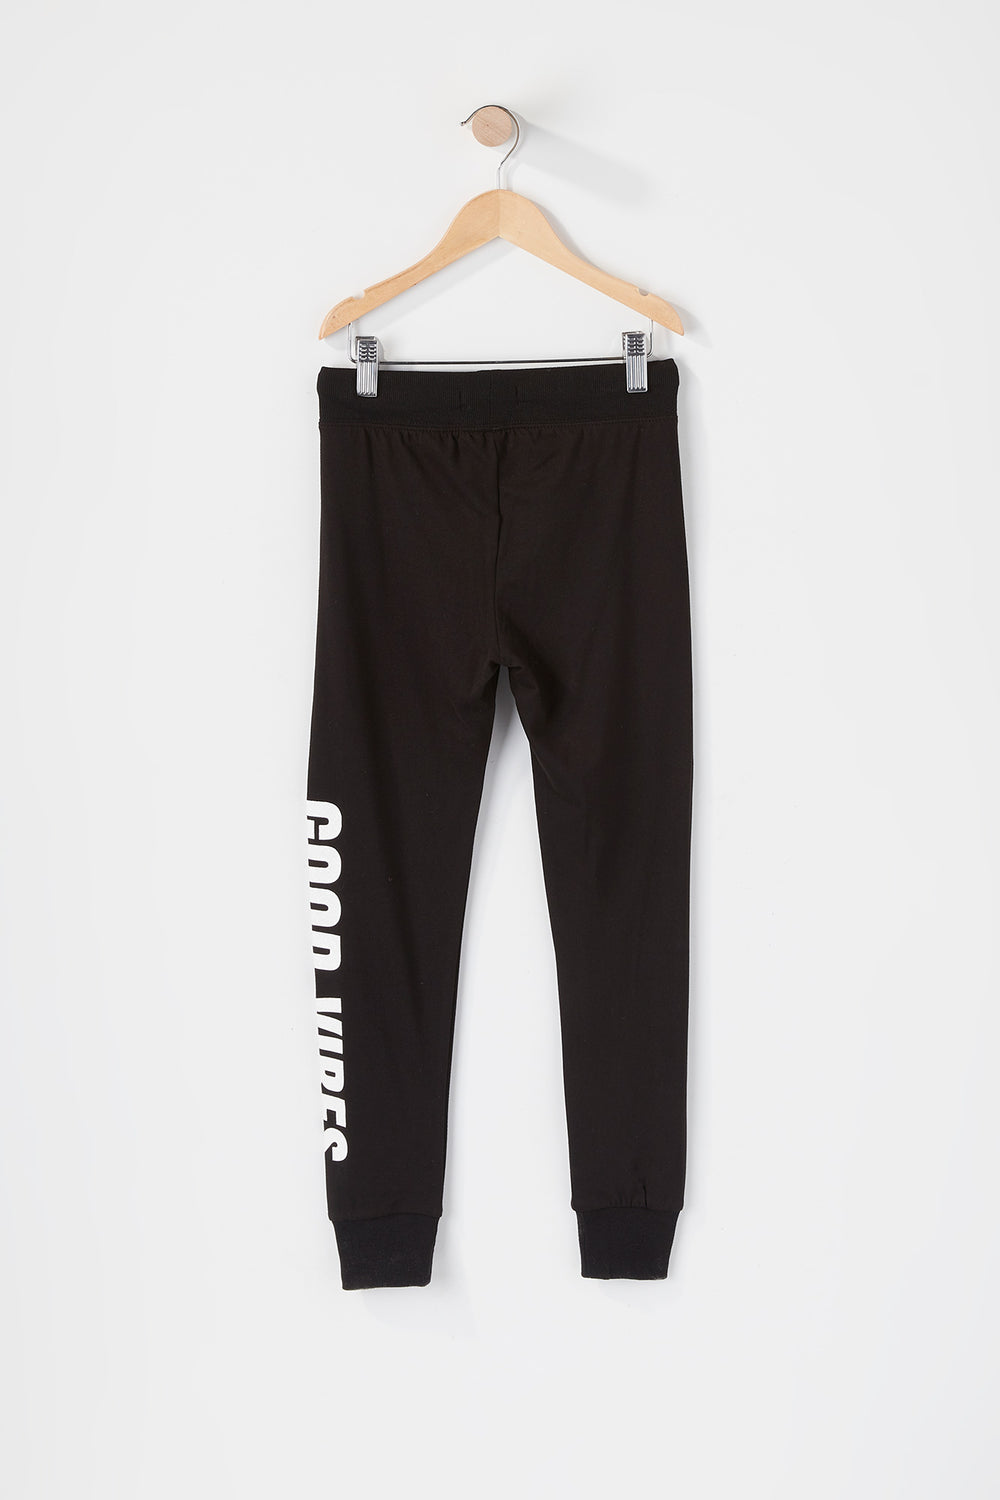 Girls Soft Graphic Jogger Black